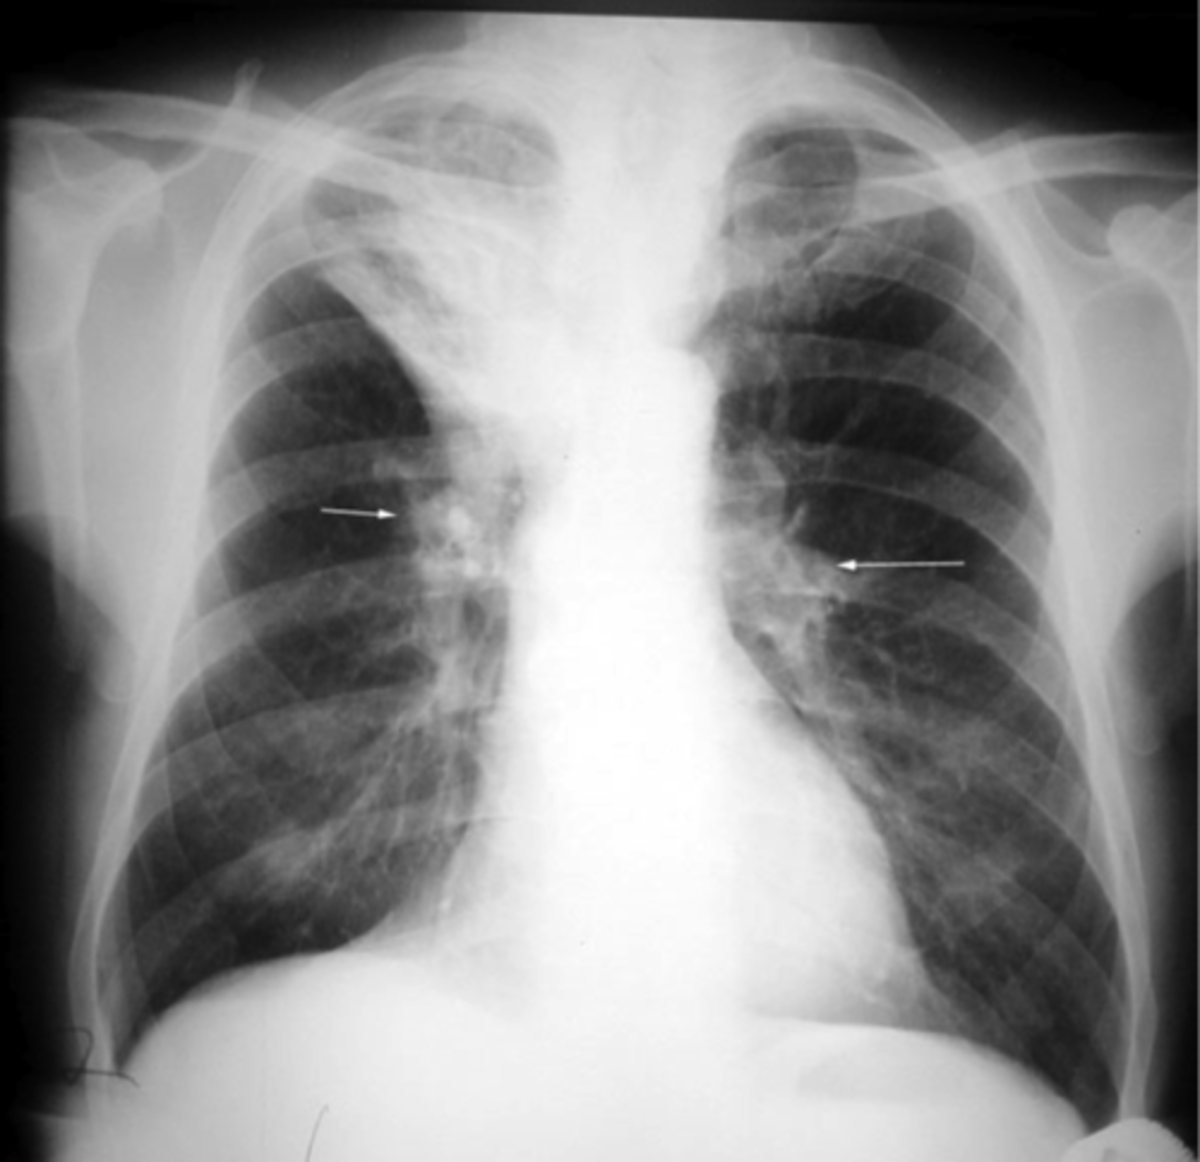 Acute atelectasis may occur as a post-operative complication or as a result of surfactant deficiency. In premature neonates, this leads to infant respiratory distress syndrome.